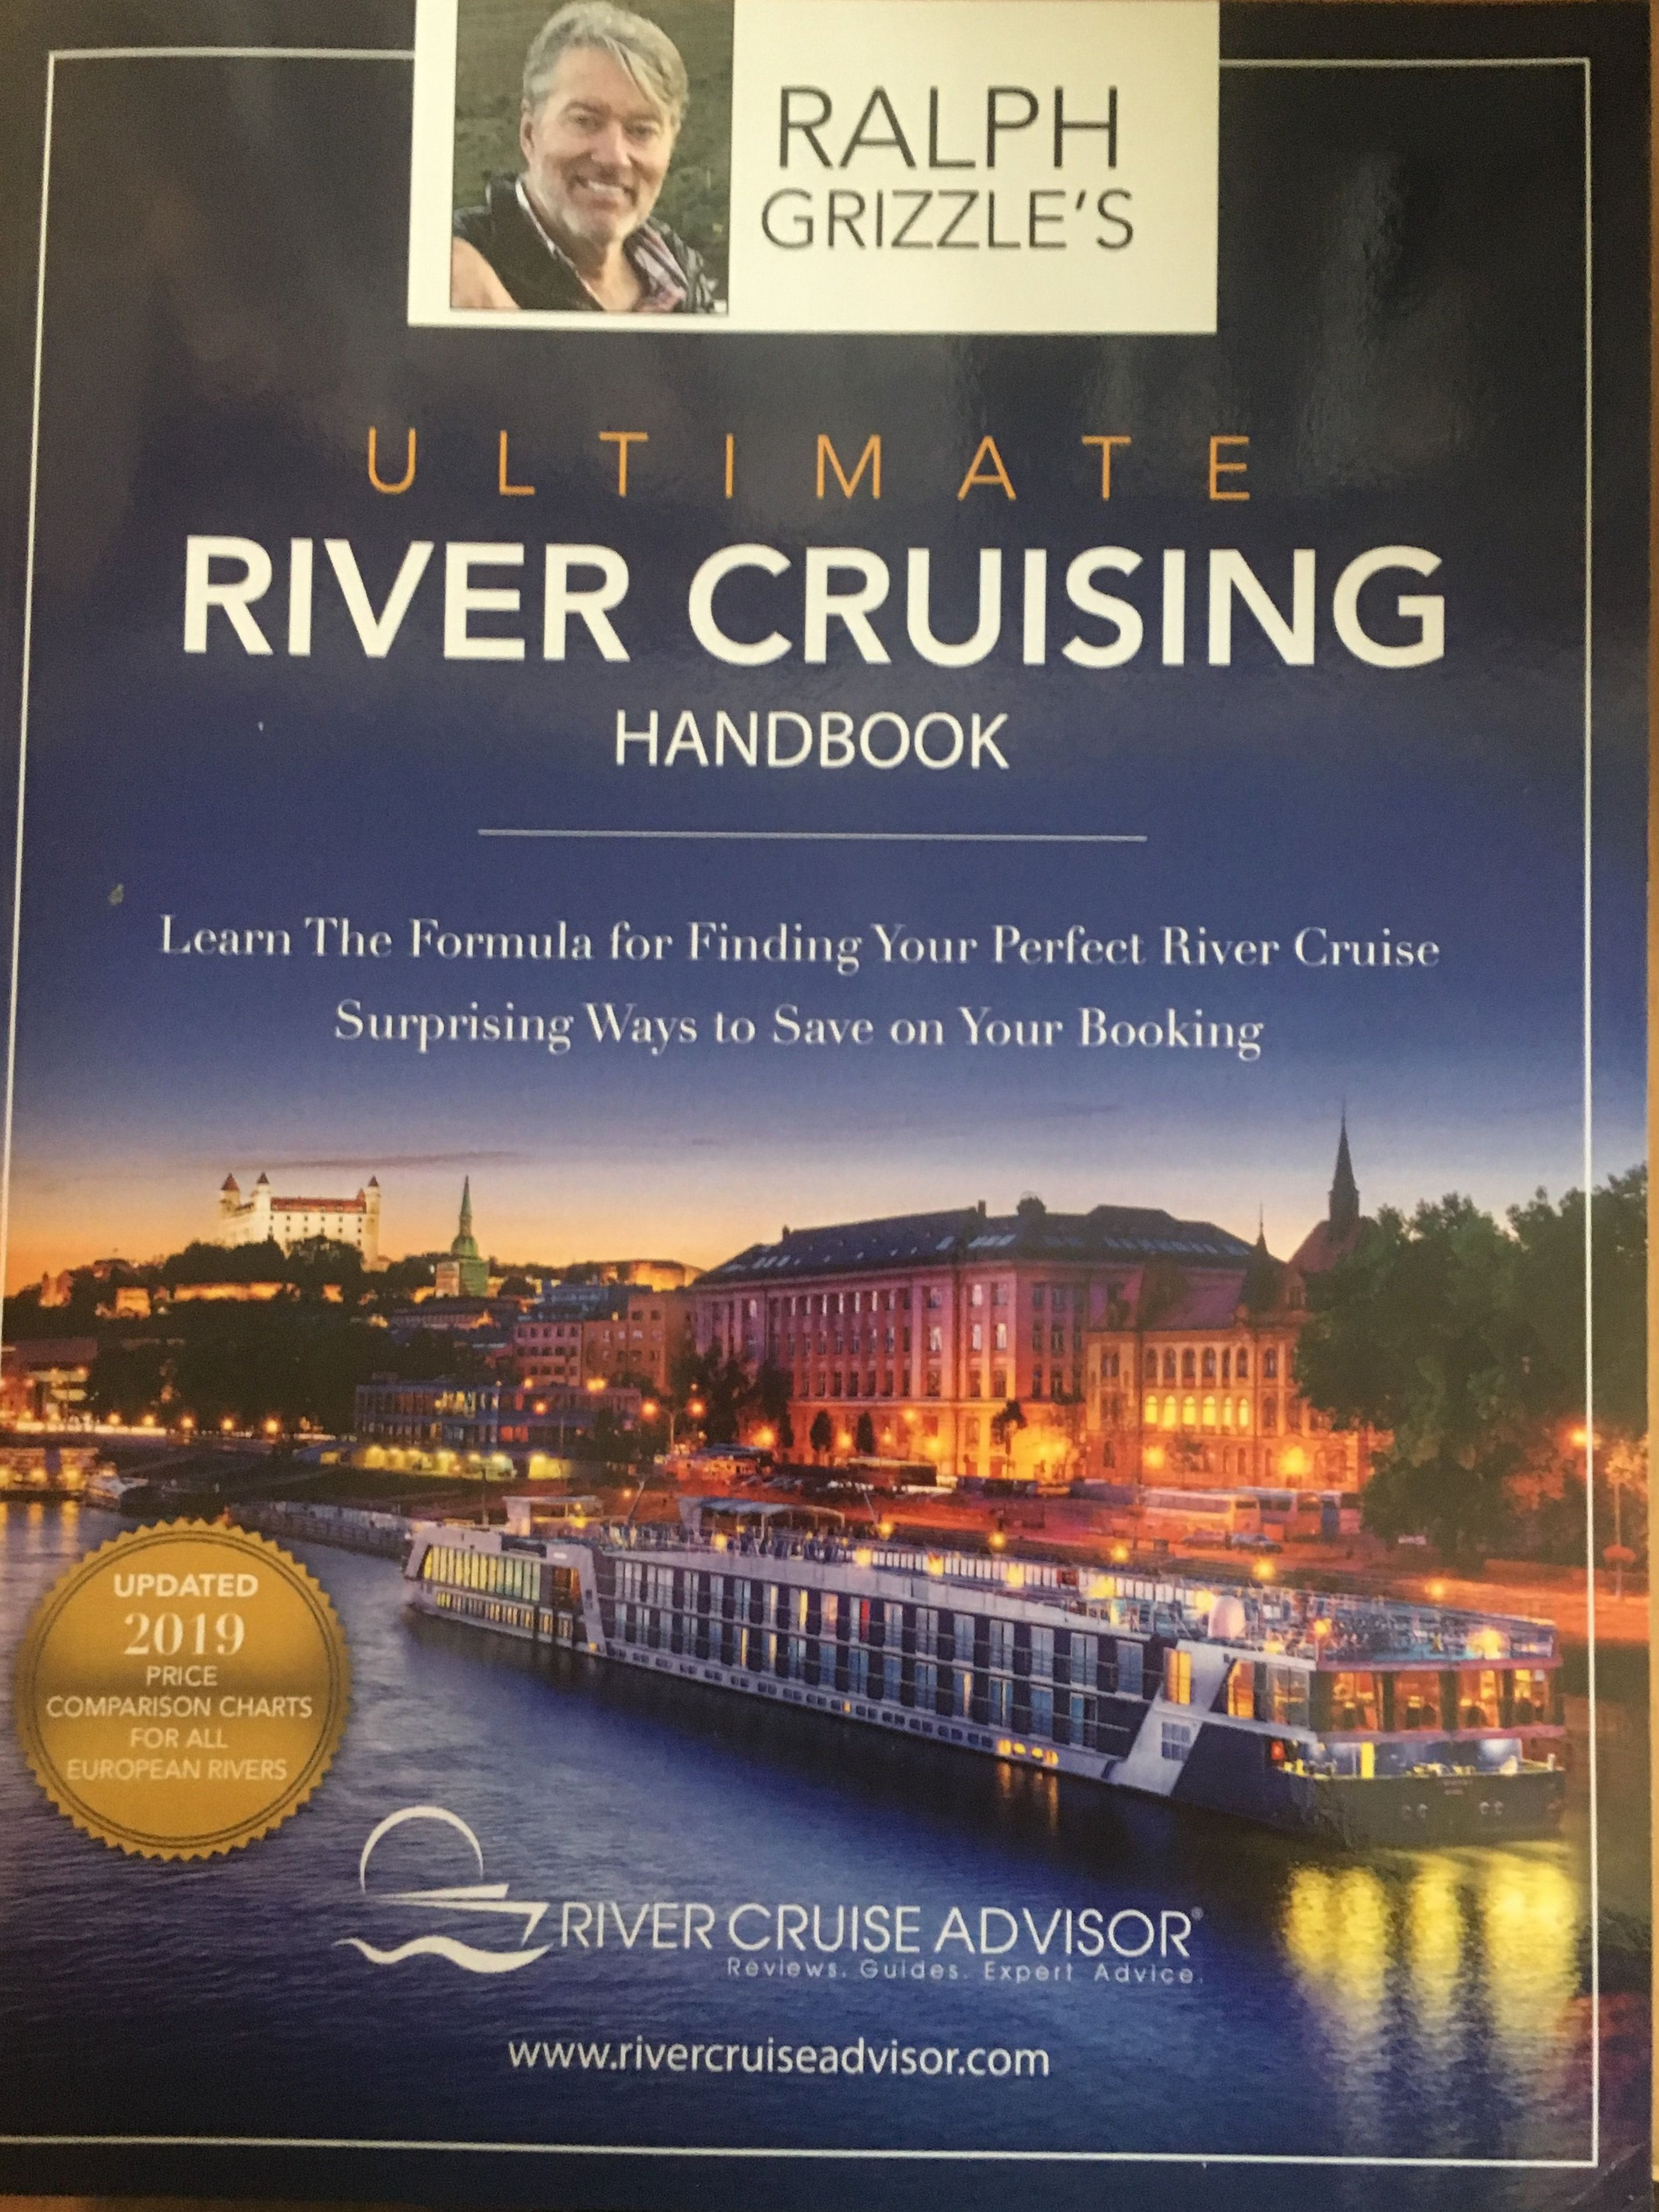 My copy of the Ultimate River Cruising Guide